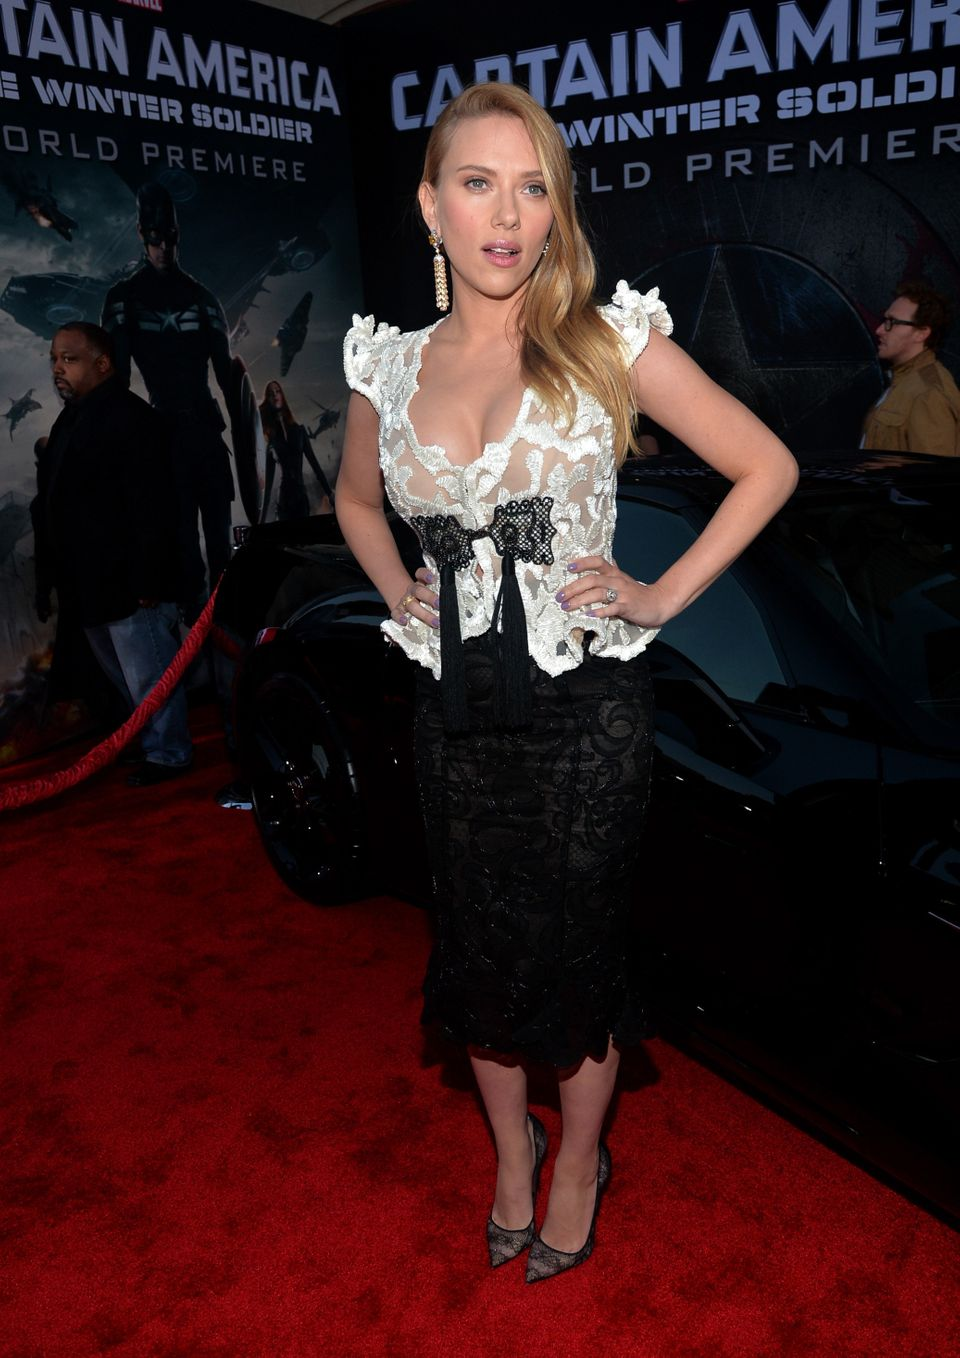 HOLLYWOOD, CA - MARCH 13:  Actress Scarlett Johansson attends Marvel's 'Captain America: The Winter Soldier' premiere at the